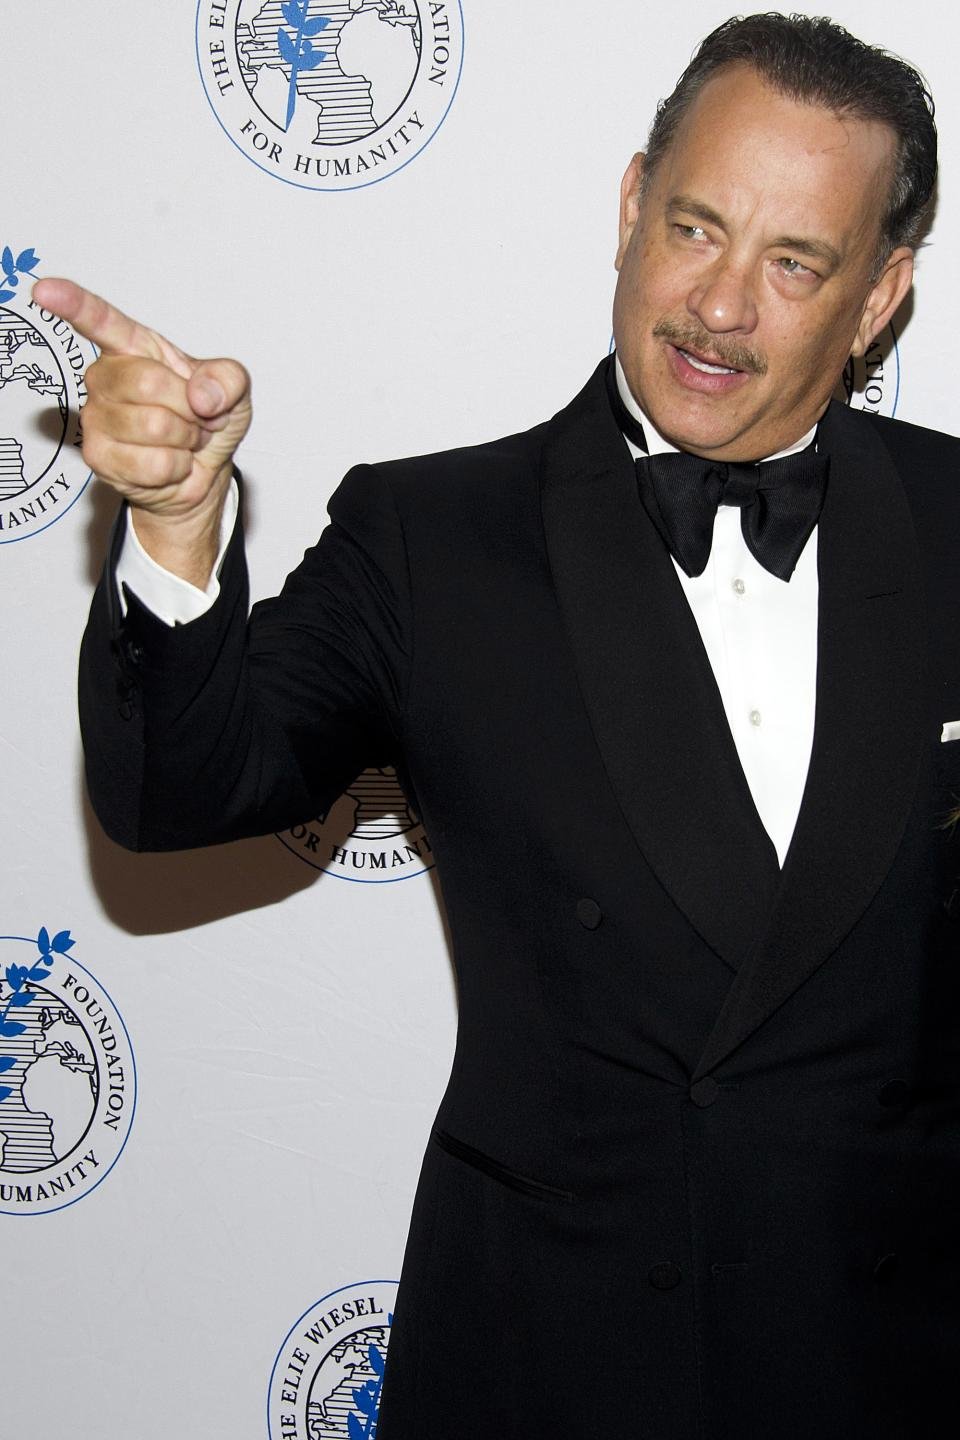 Honoree Tom Hanks attends The Elie Wiesel Foundation For Humanity's Arts for Humanity Gala on Wednesday, Oct. 17, 2012  in New York.  (Photo by Charles Sykes/Invision/AP)